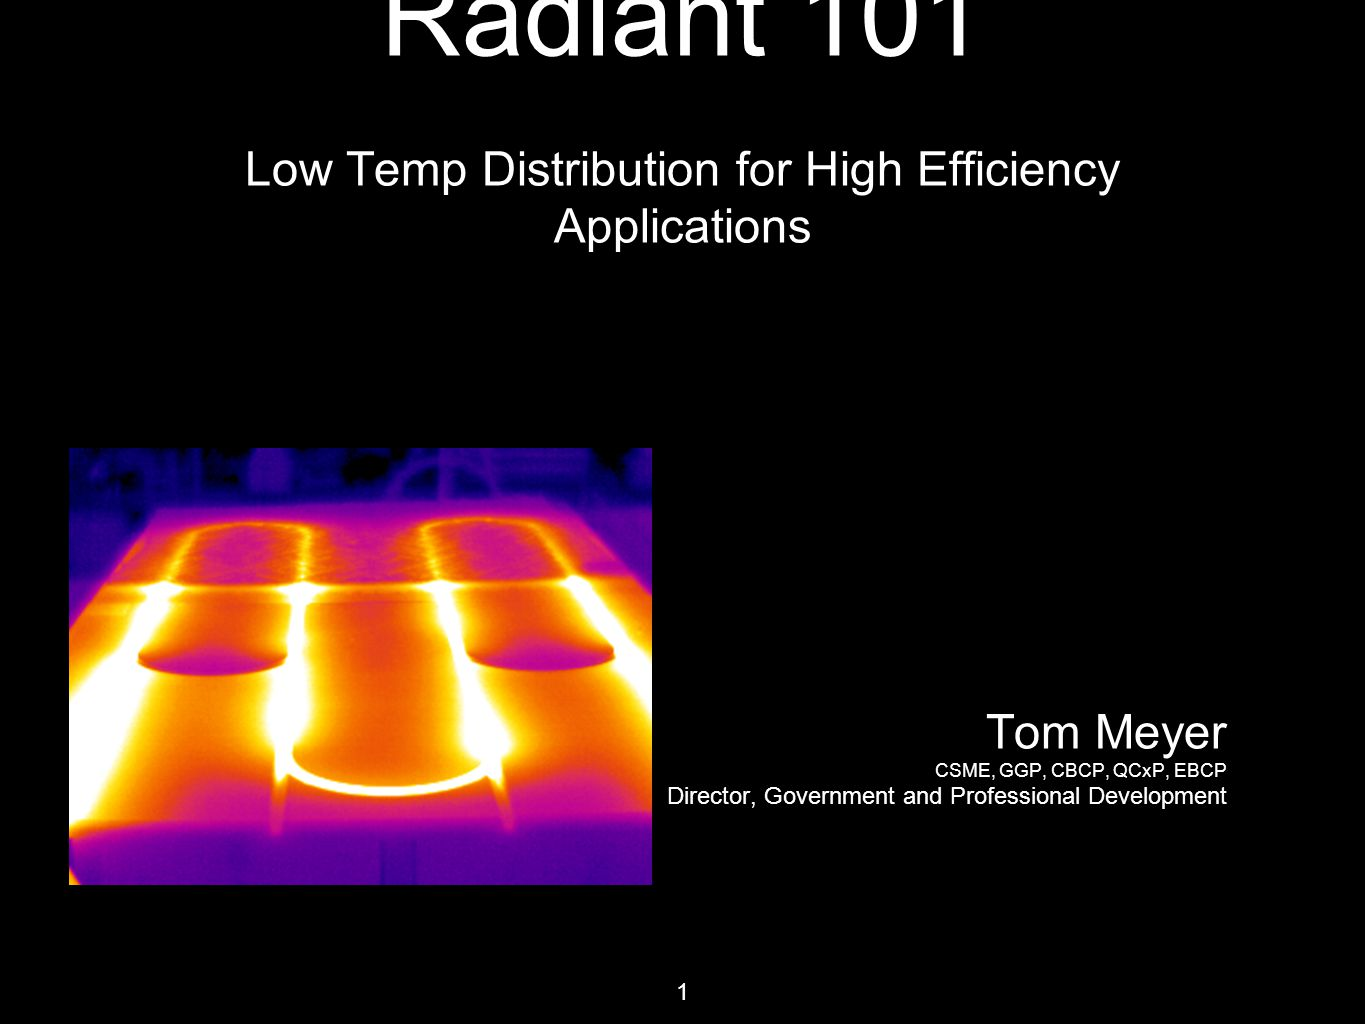 1 Radiant 101 Low Temp Distribution for High Efficiency Applications Tom Meyer CSME, GGP, CBCP, QCxP, EBCP Director, Government and Professional Development